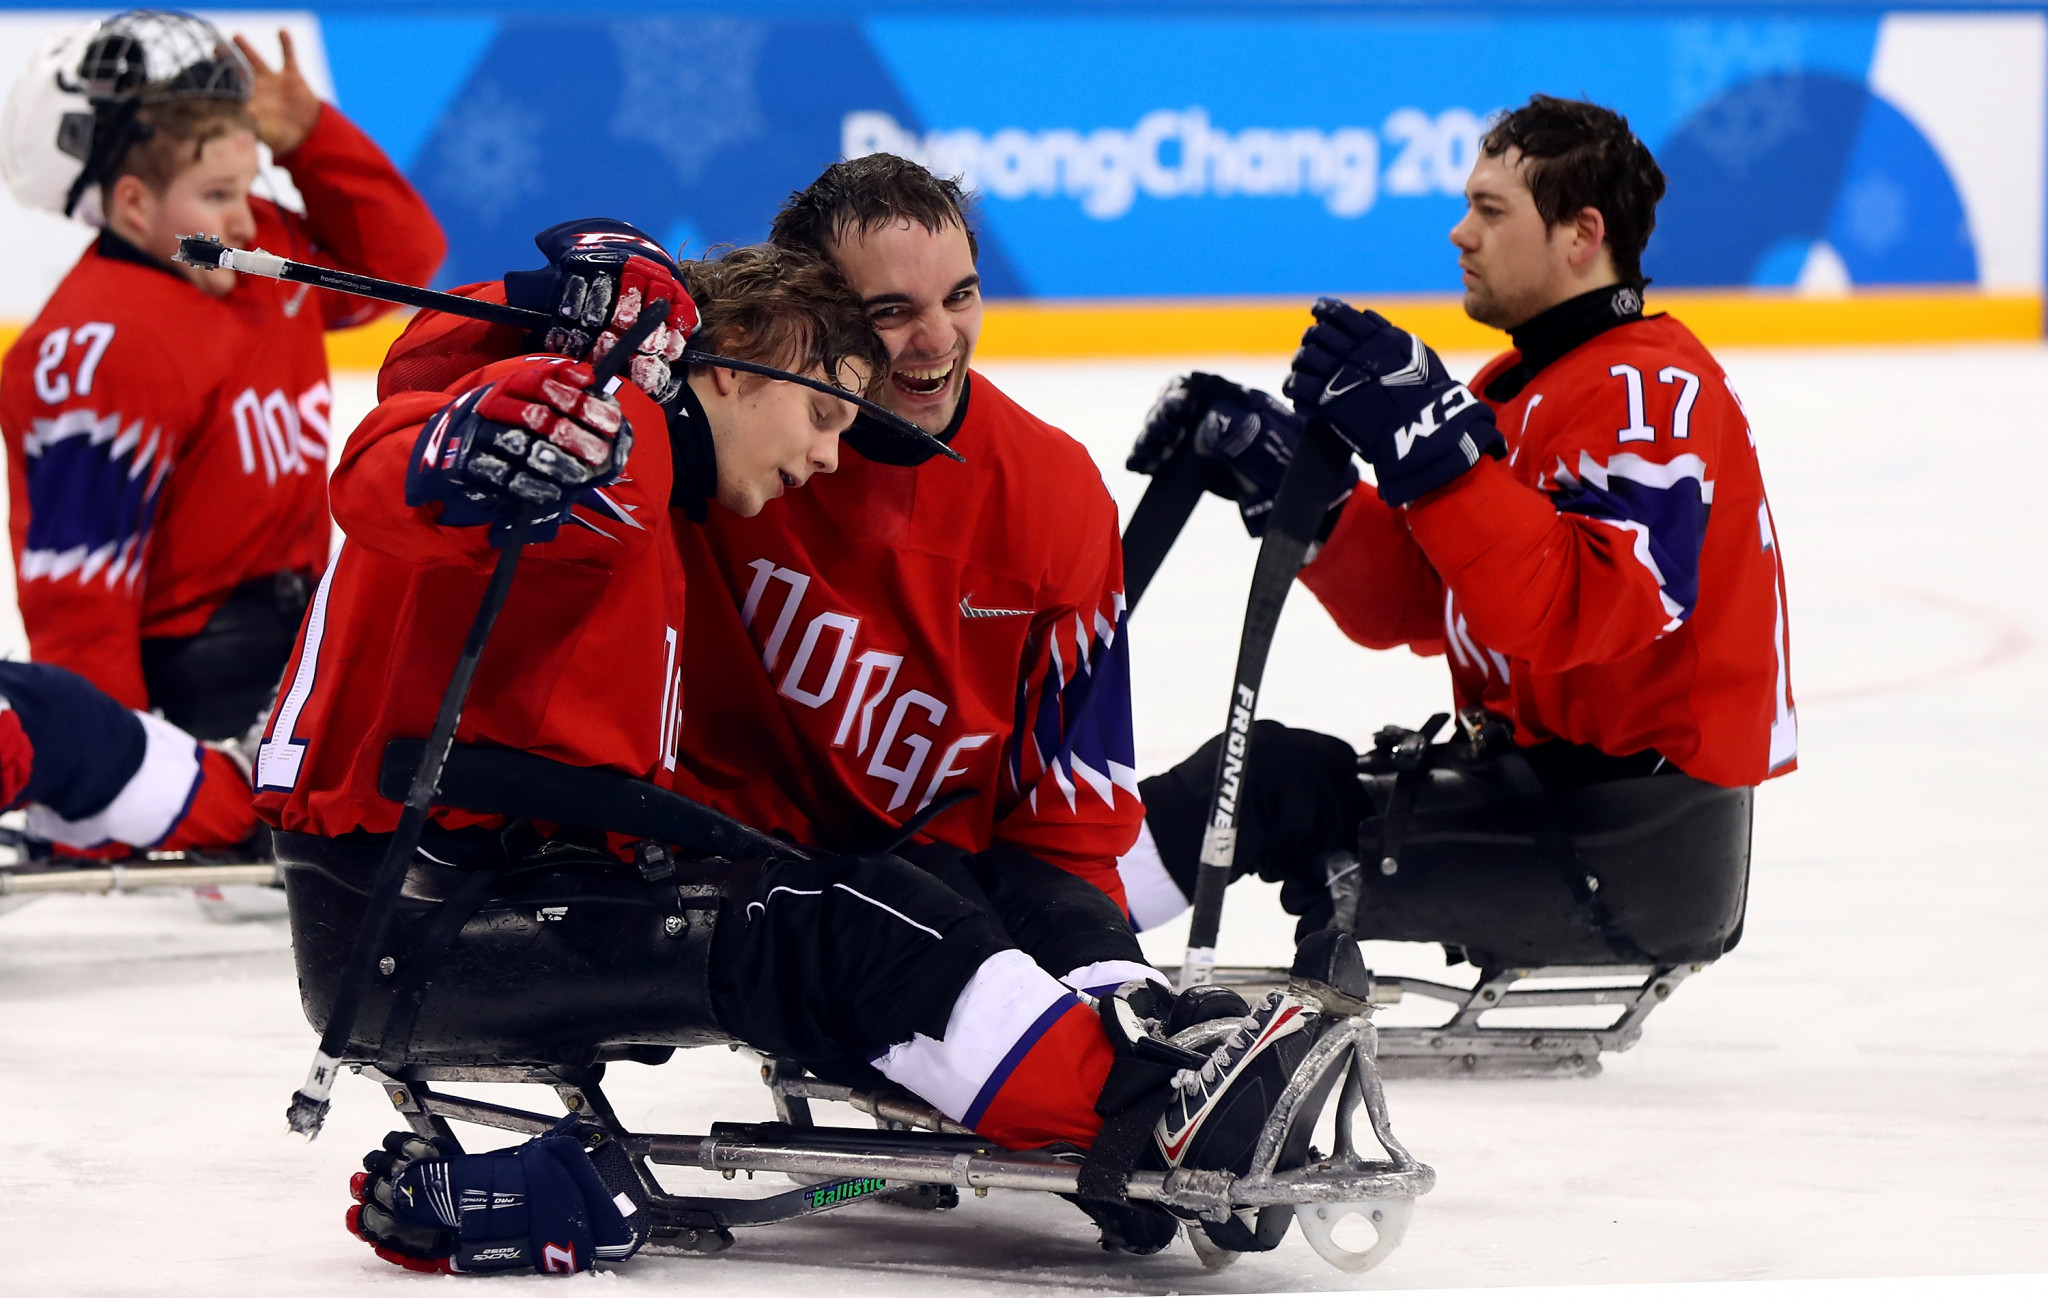 Norway, the bronze medallists in 2016, are among the eight teams set to compete at the 2020 World Para Ice Hockey European Championships ©Getty Images